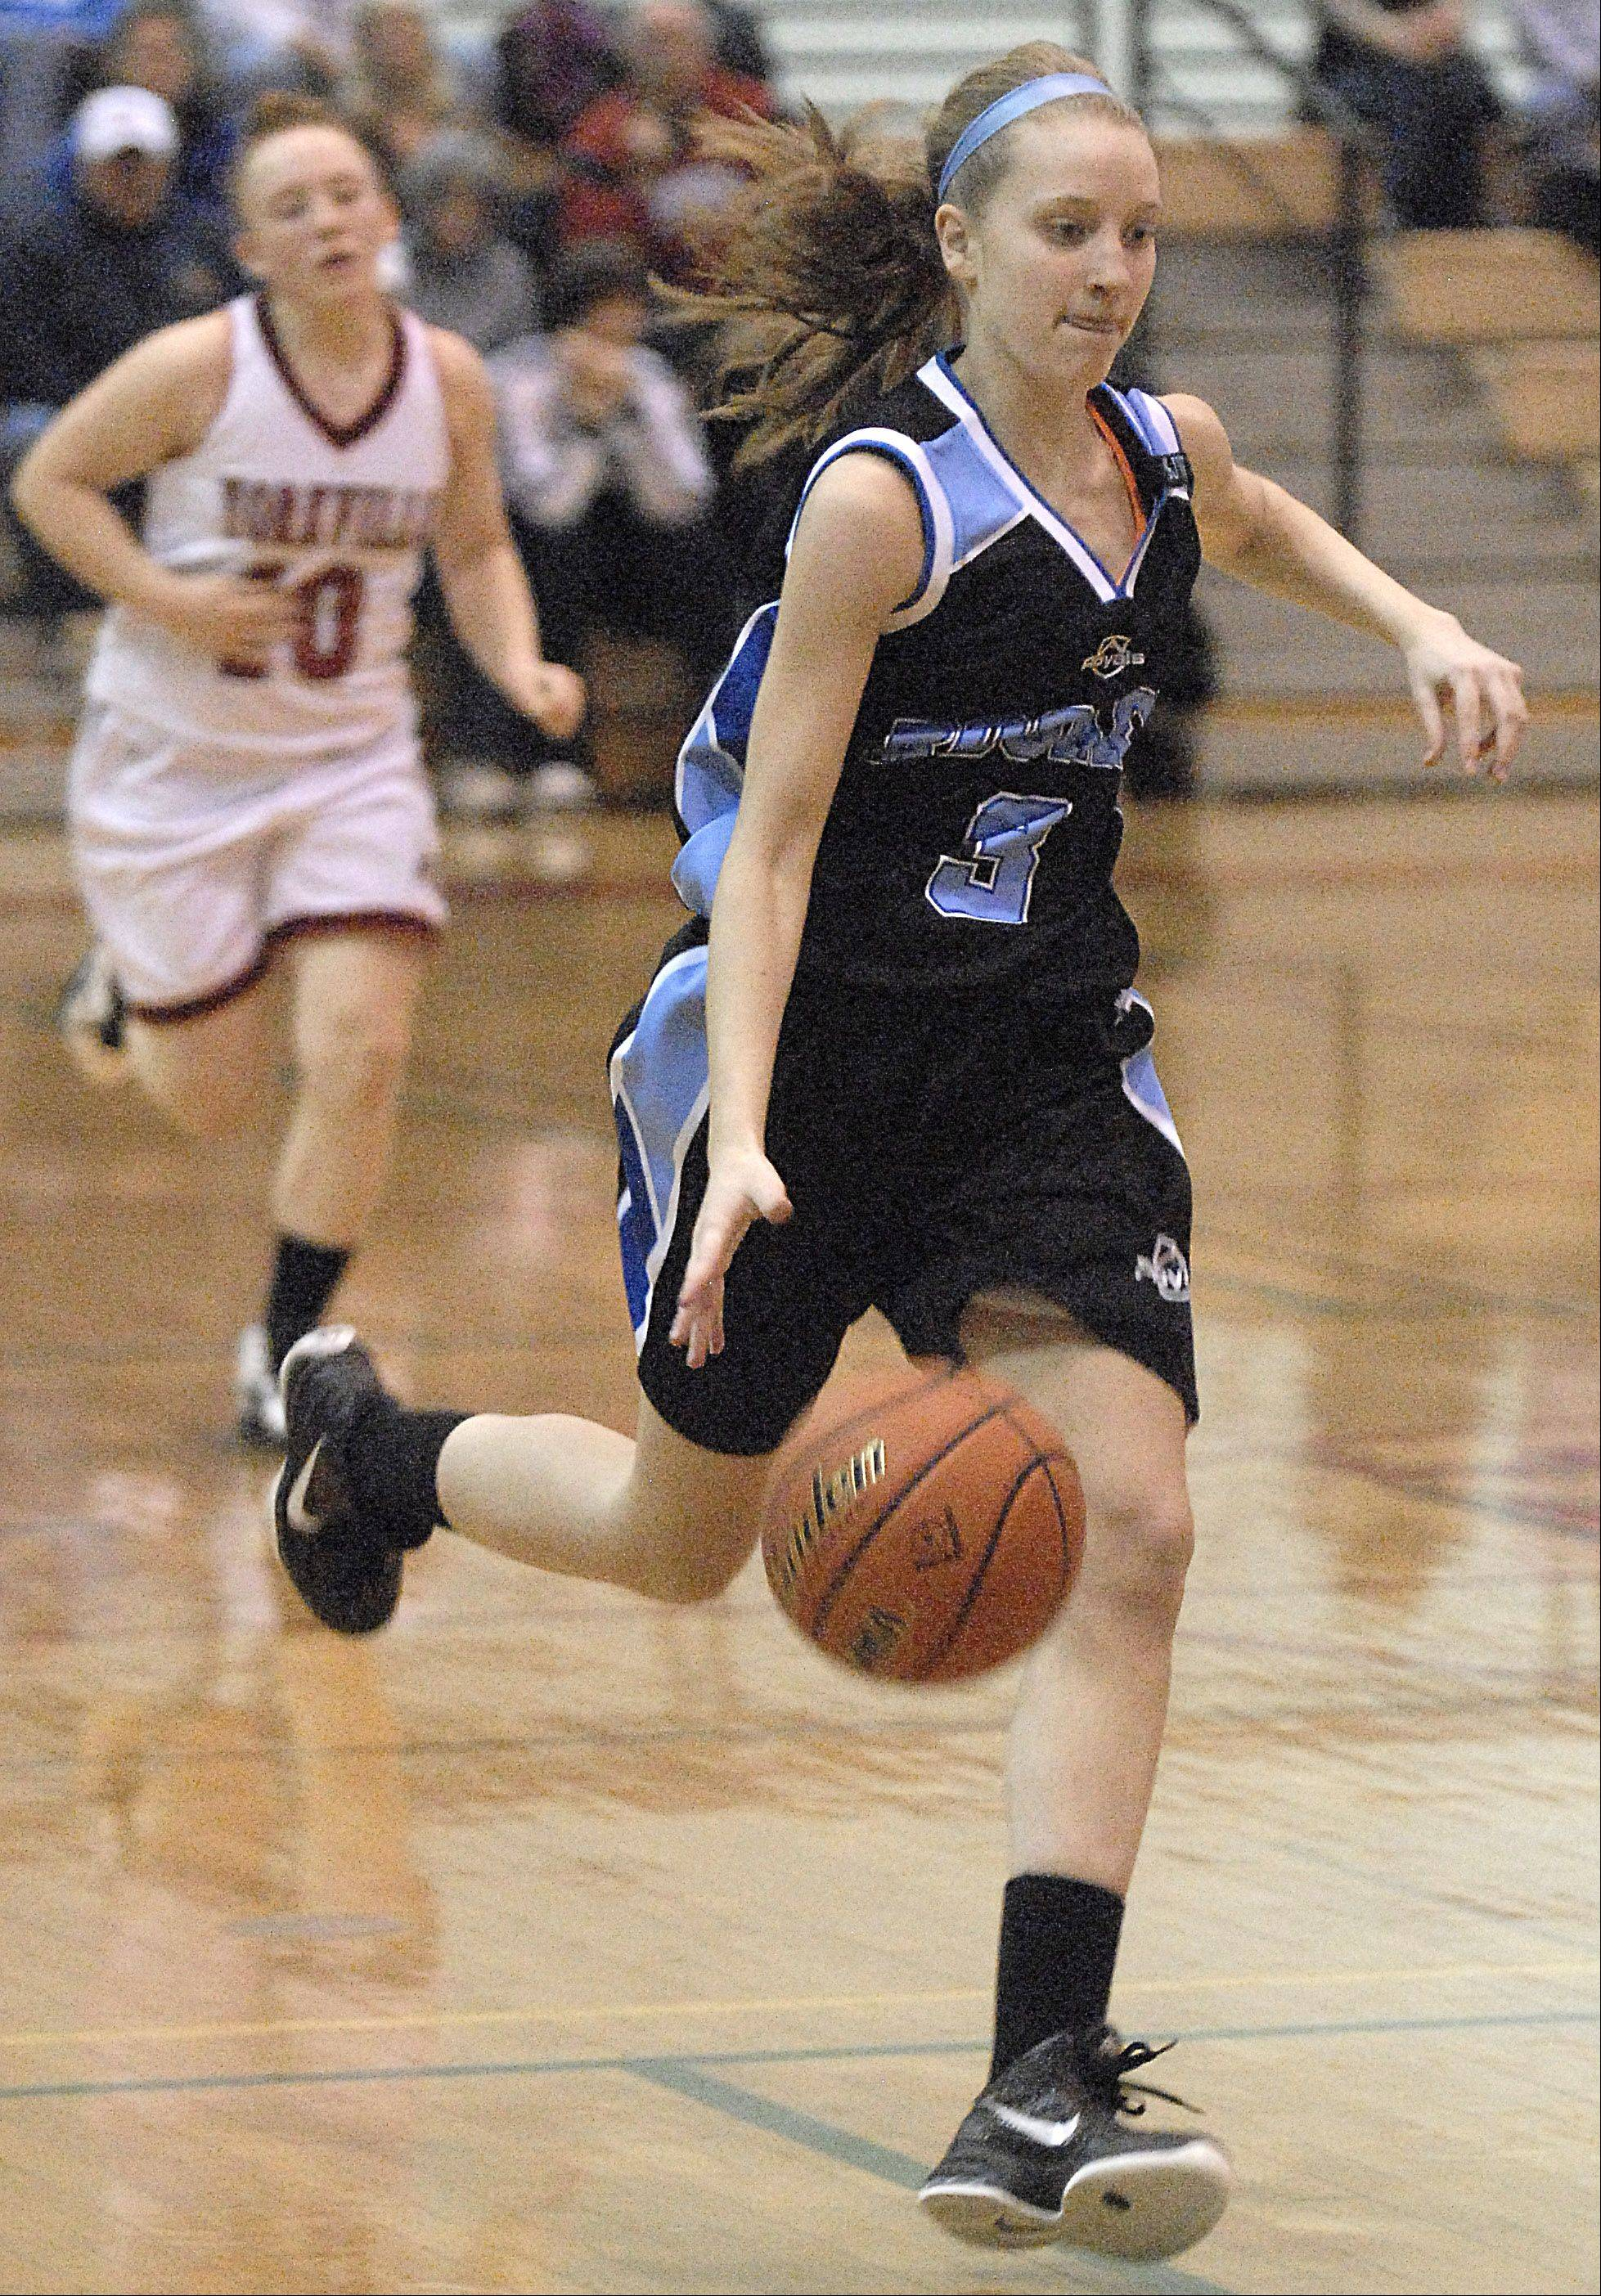 Laura Stoecker/lstoecker@dailyherald.com ¬ Rosary's Rachel Choice sprints down the court in the first quarter vs Yorkville at the regional game on Wednesday, February 15.